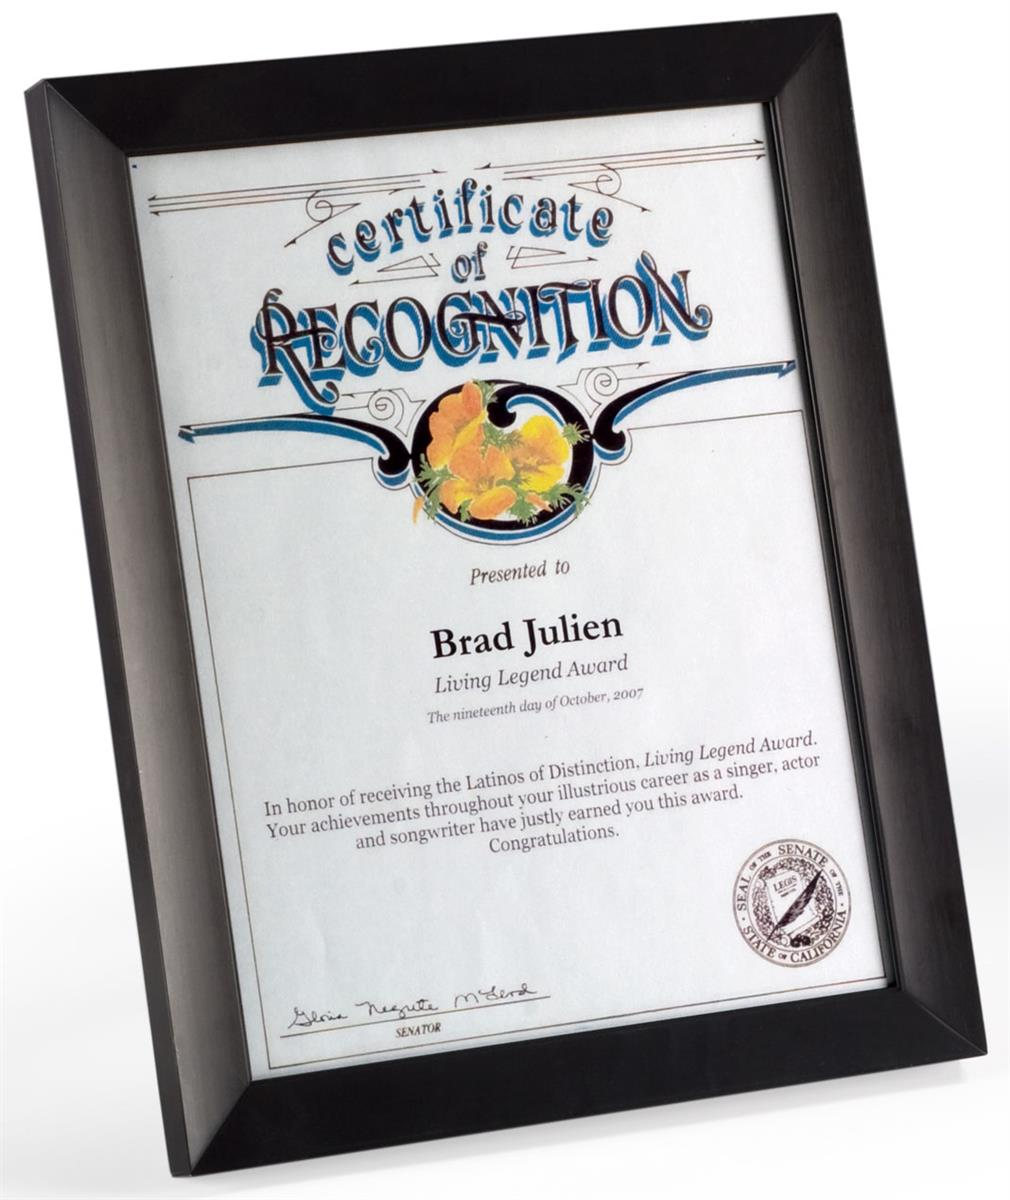 8 5 x 11 certificate frames for documents prints black